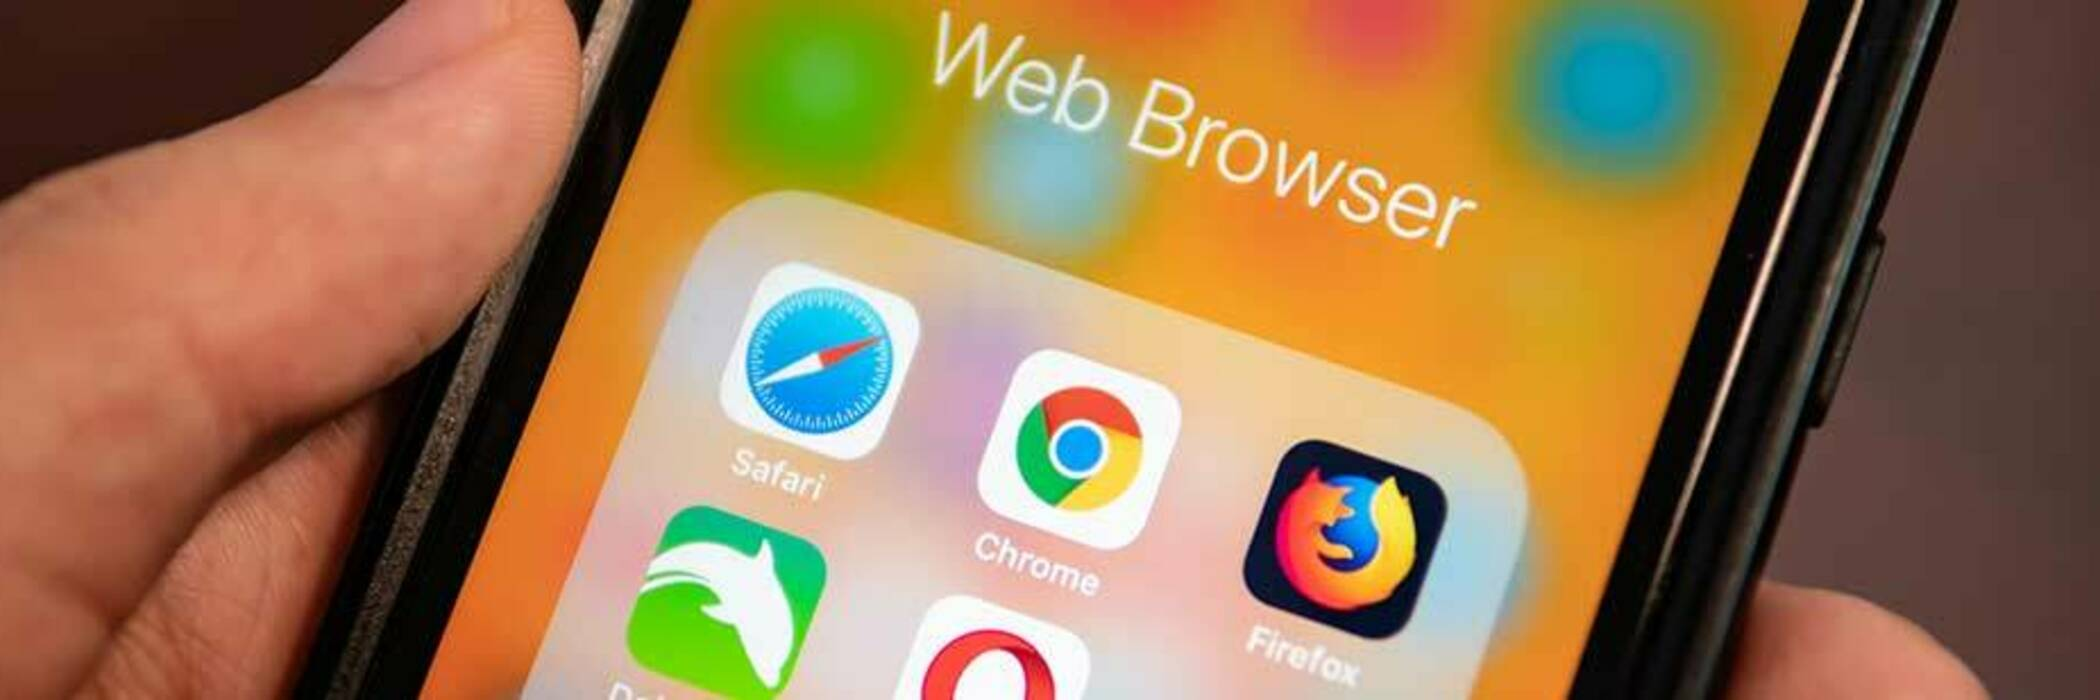 Hand holding a smartphone displaying icons for Google Chrome and other browsers.